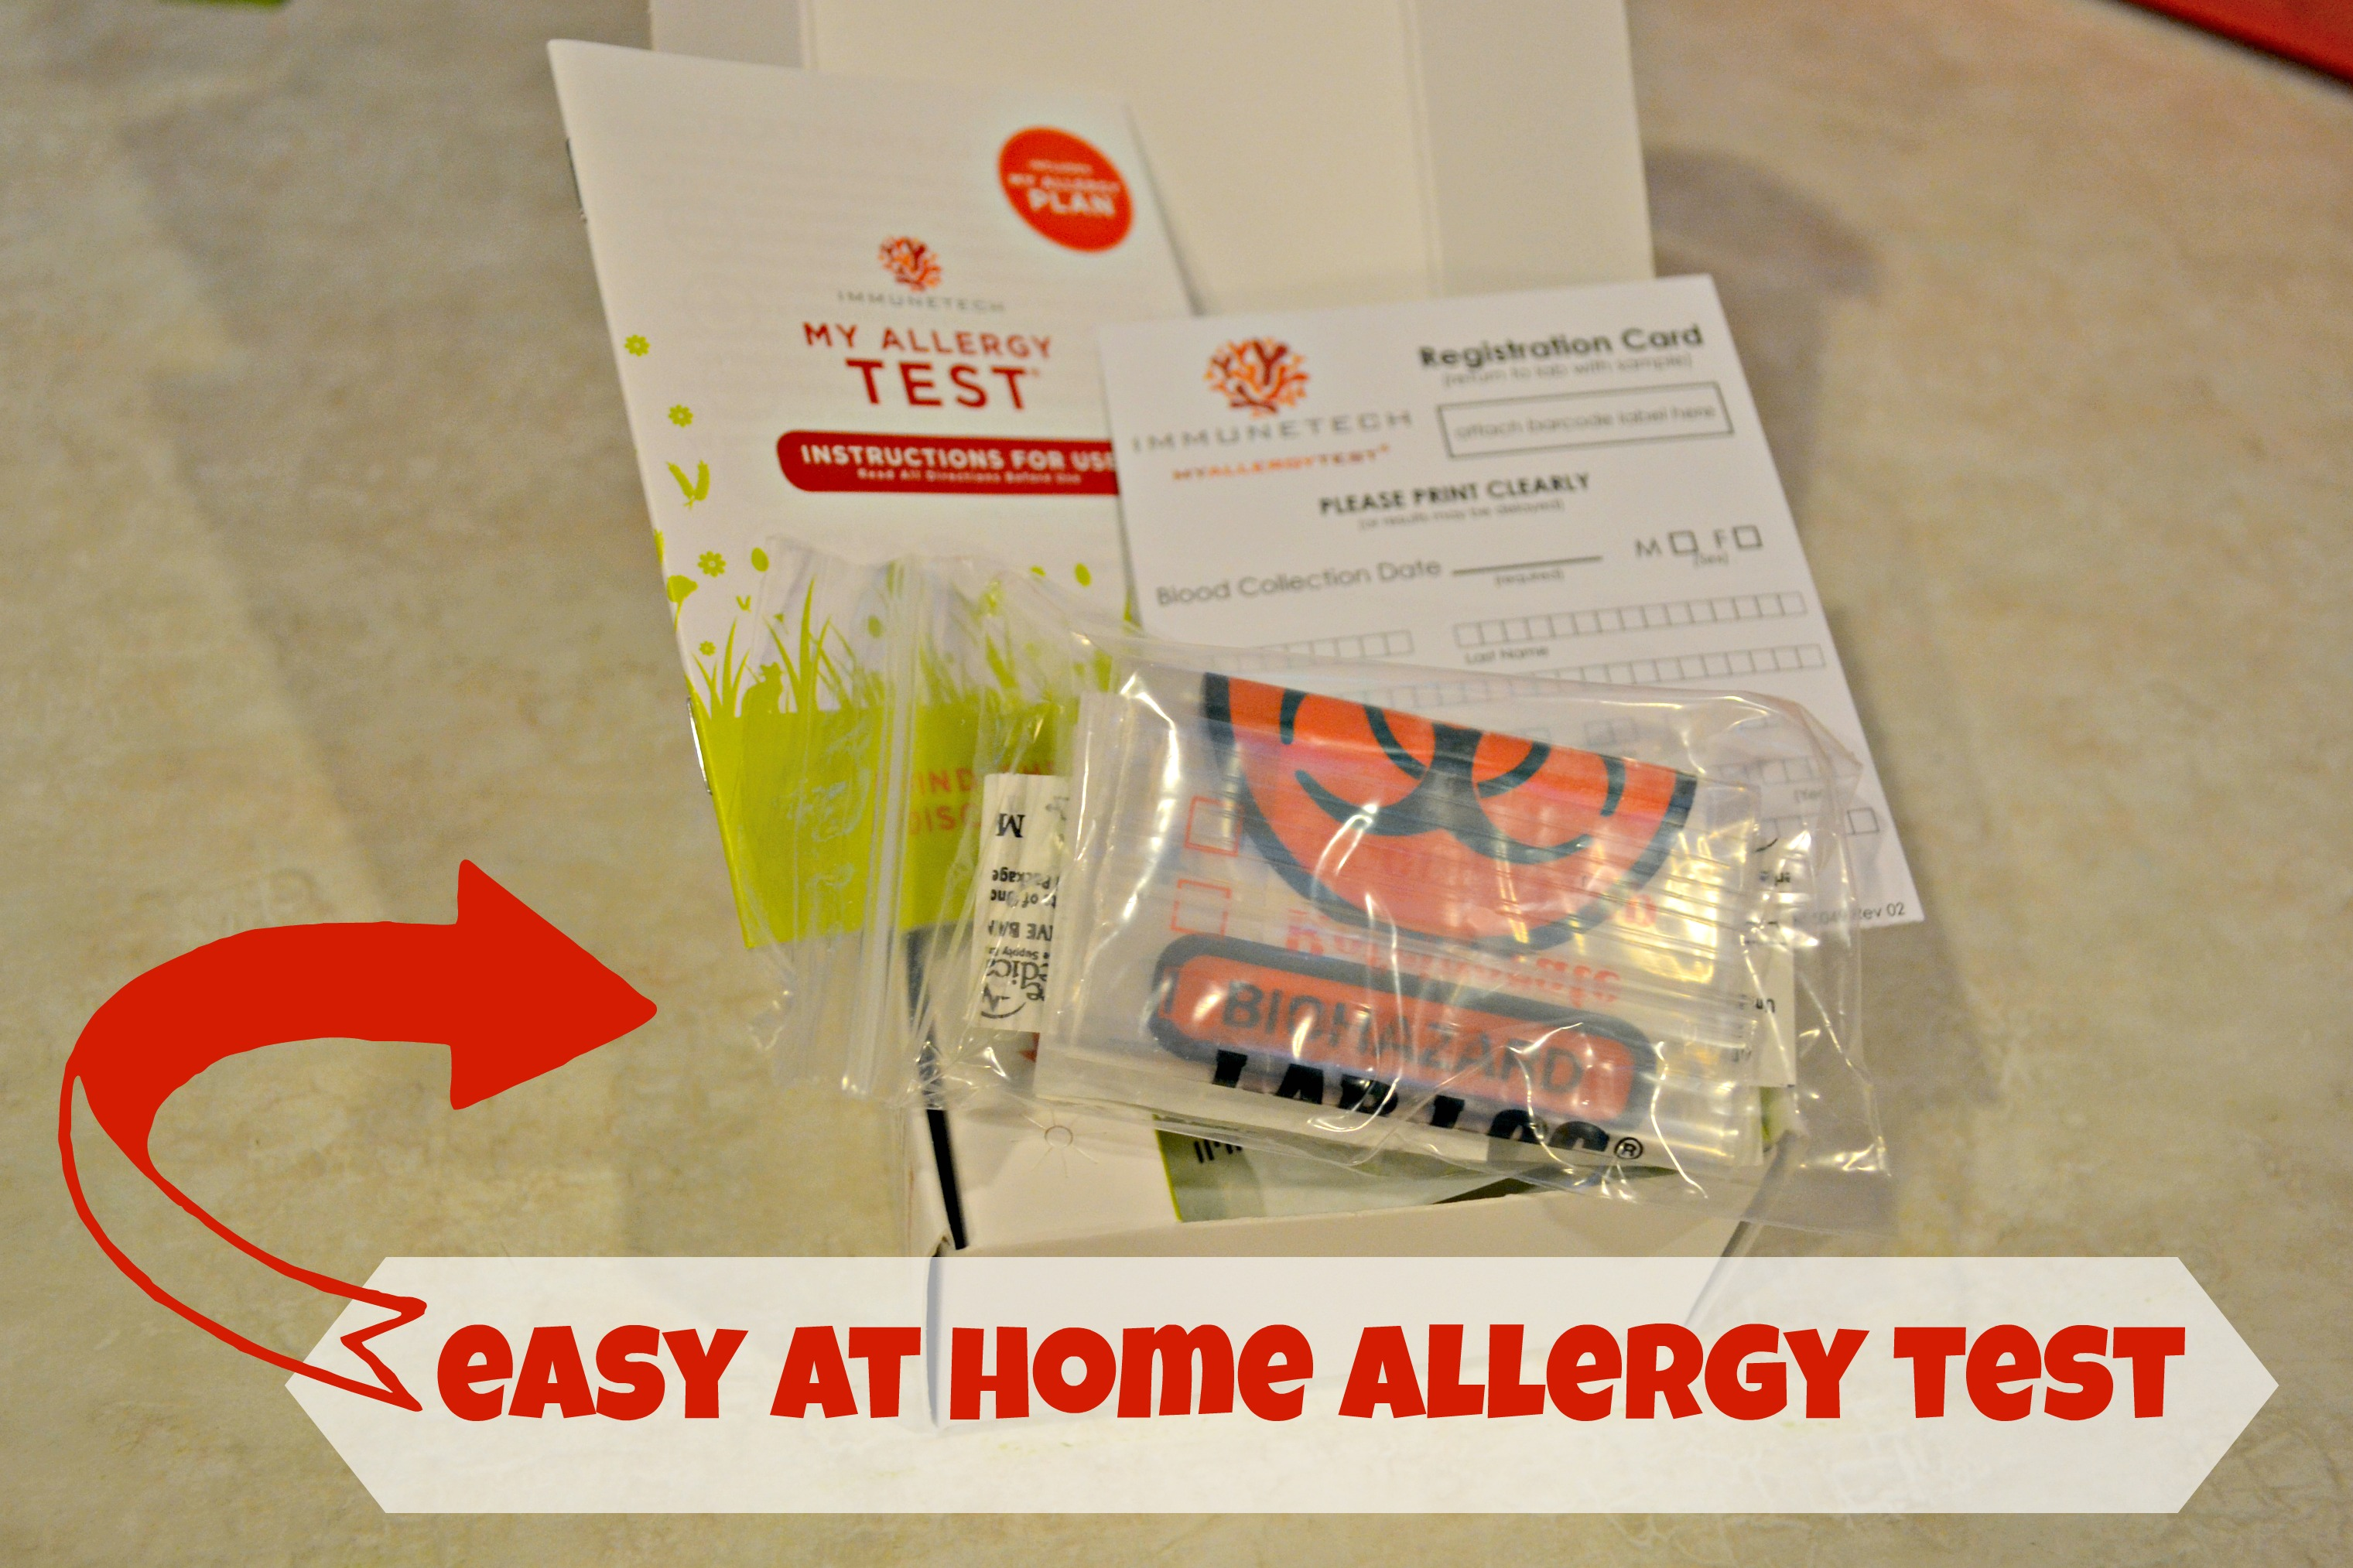 At Home Allergy Test with Giveaway